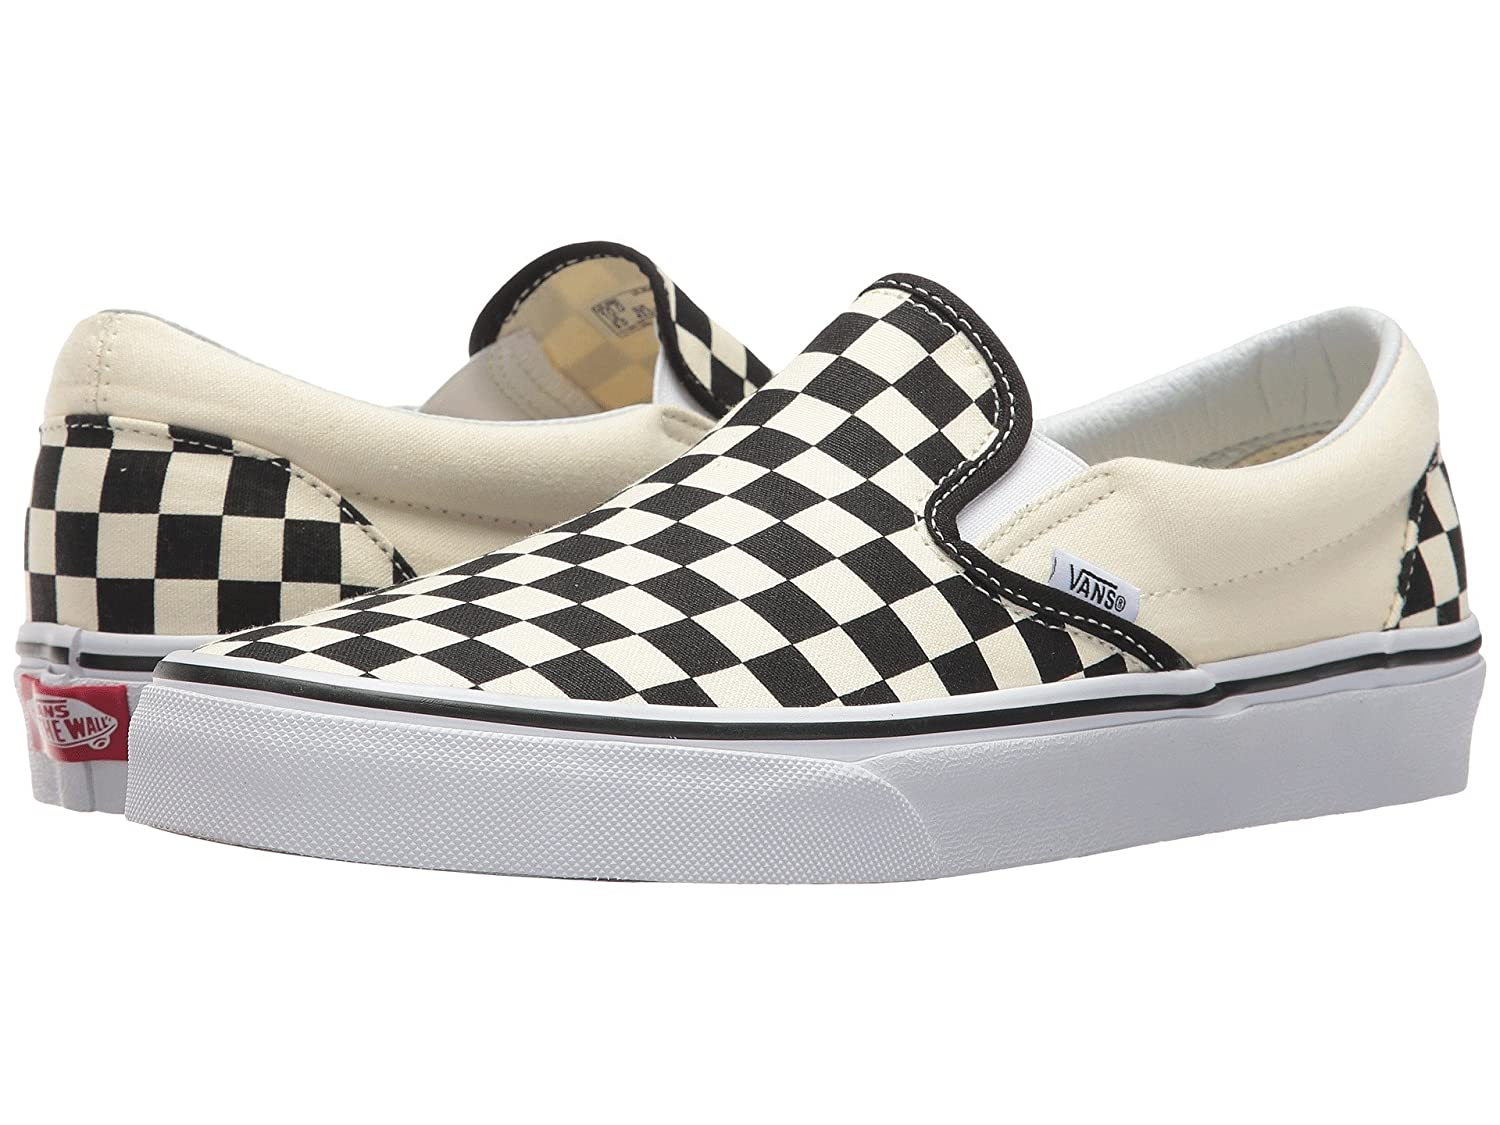 Vans Unisex Classic (Checkerboard) Slip-On Skate Shoe B073LVV47N 5.5 M US Women / 4 M US Men|Black/White Checkerboard